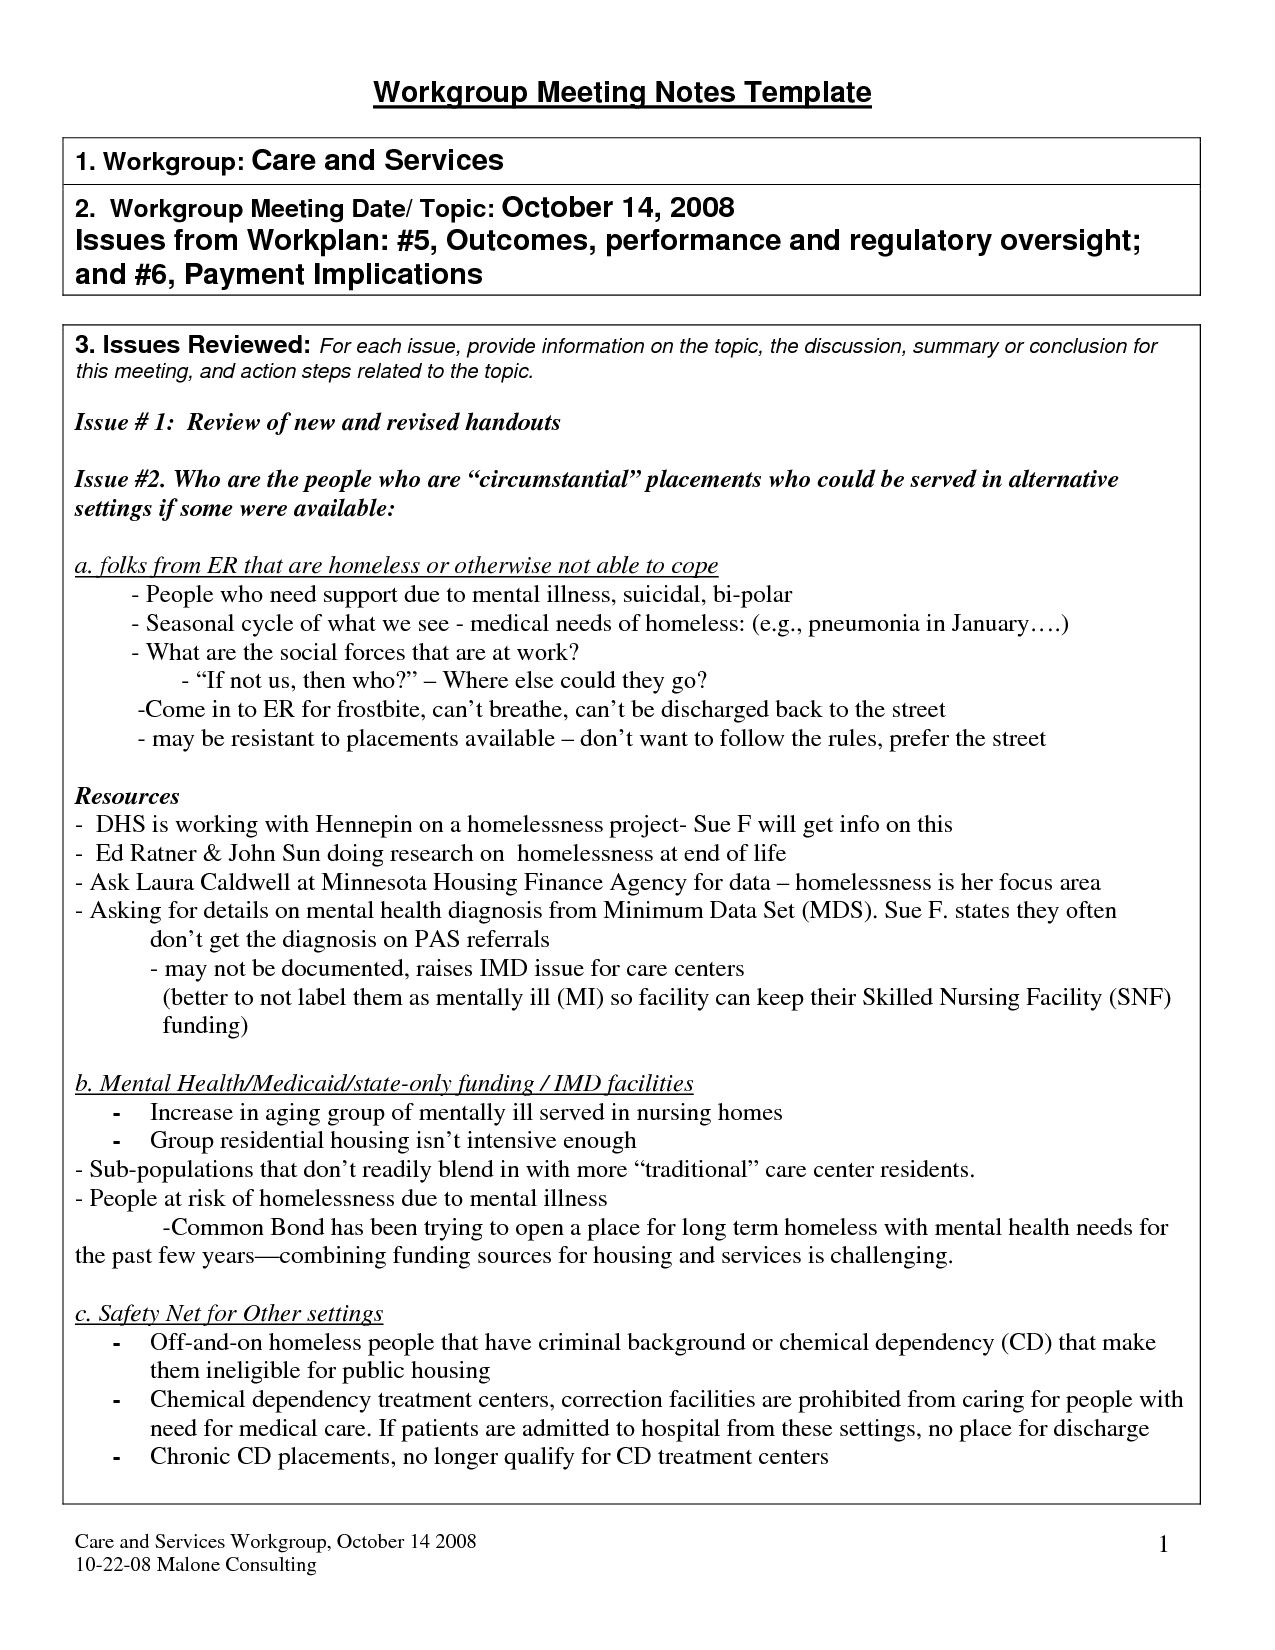 Summary Meeting Template Colona Rsd7 In Meeting Recap Template